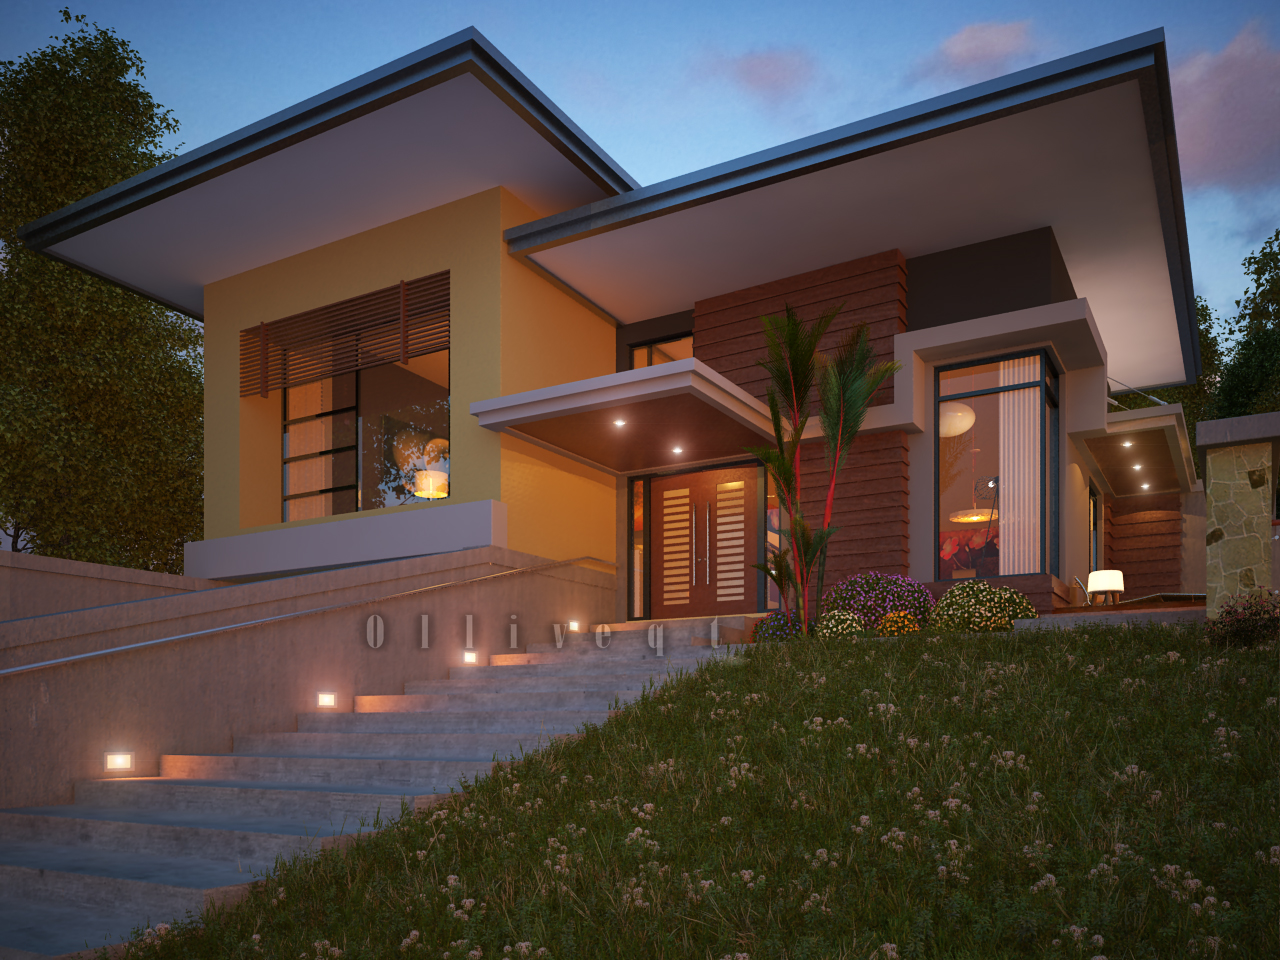 35 BEAUTIFUL HOUSE DESIGNS TO CHOOSE FROM